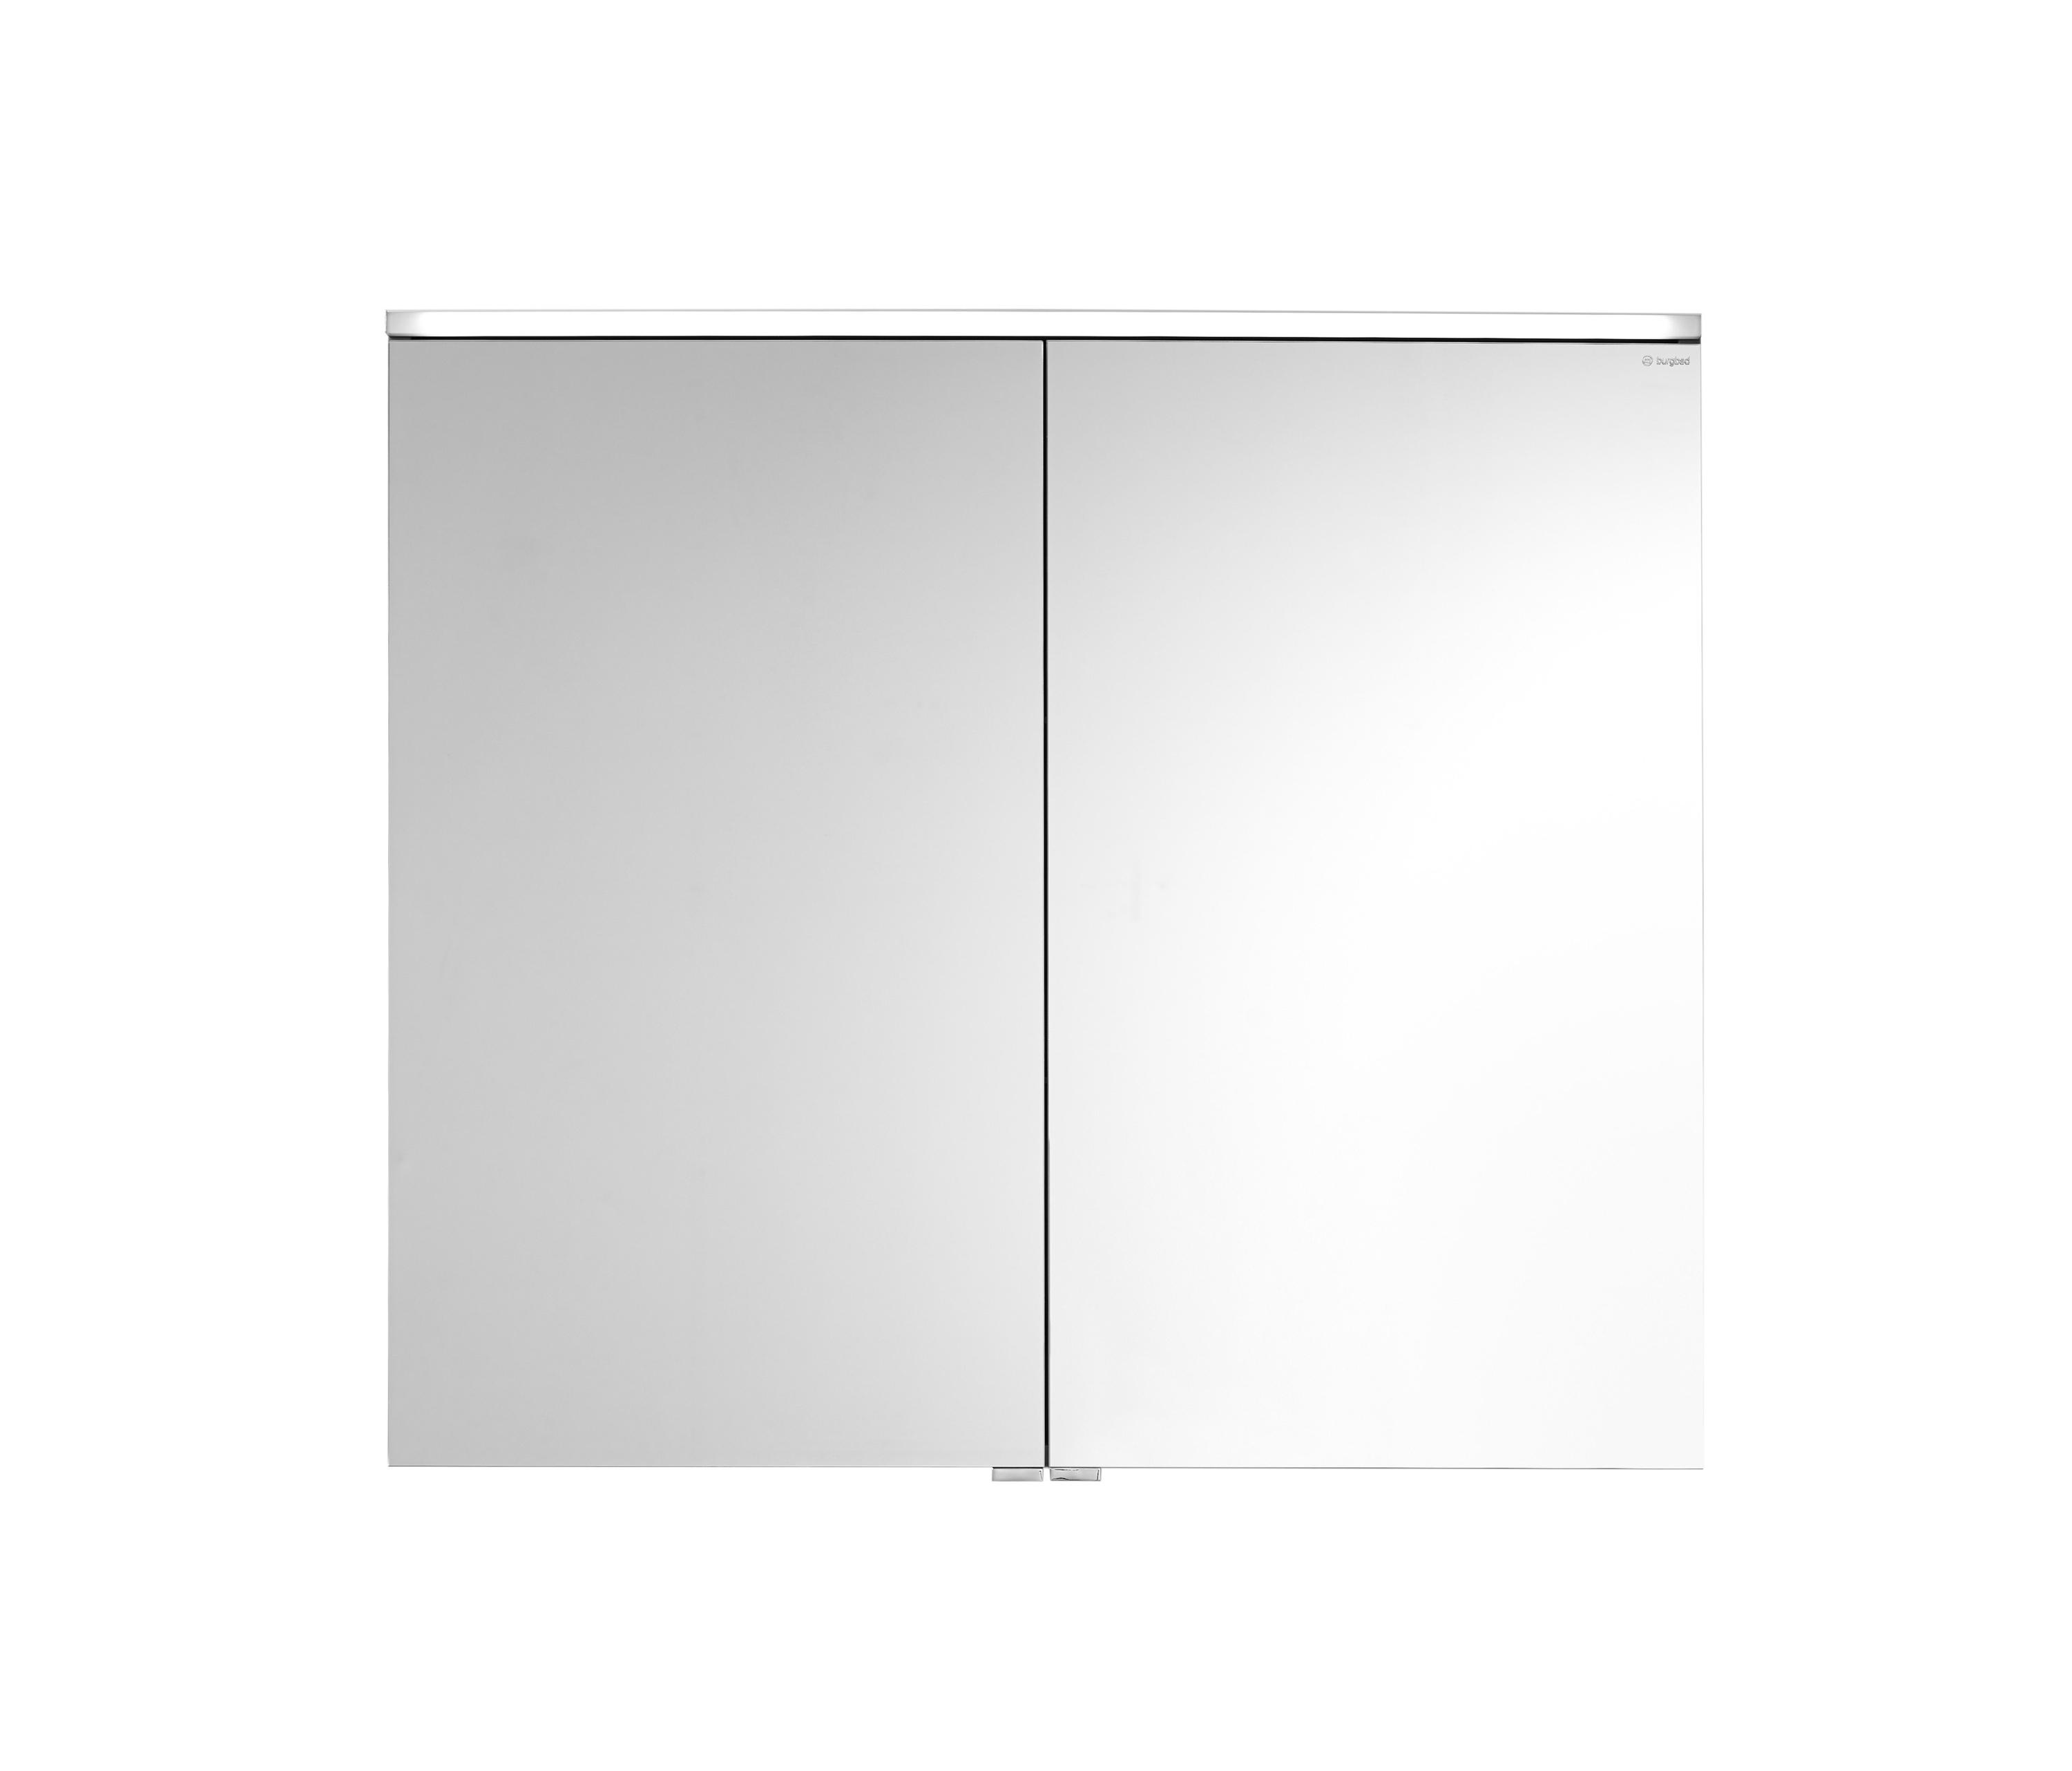 Eqio mirror cabinet with horizontal led lighting armarios espejo de burgbad architonic for Espejo horizontal